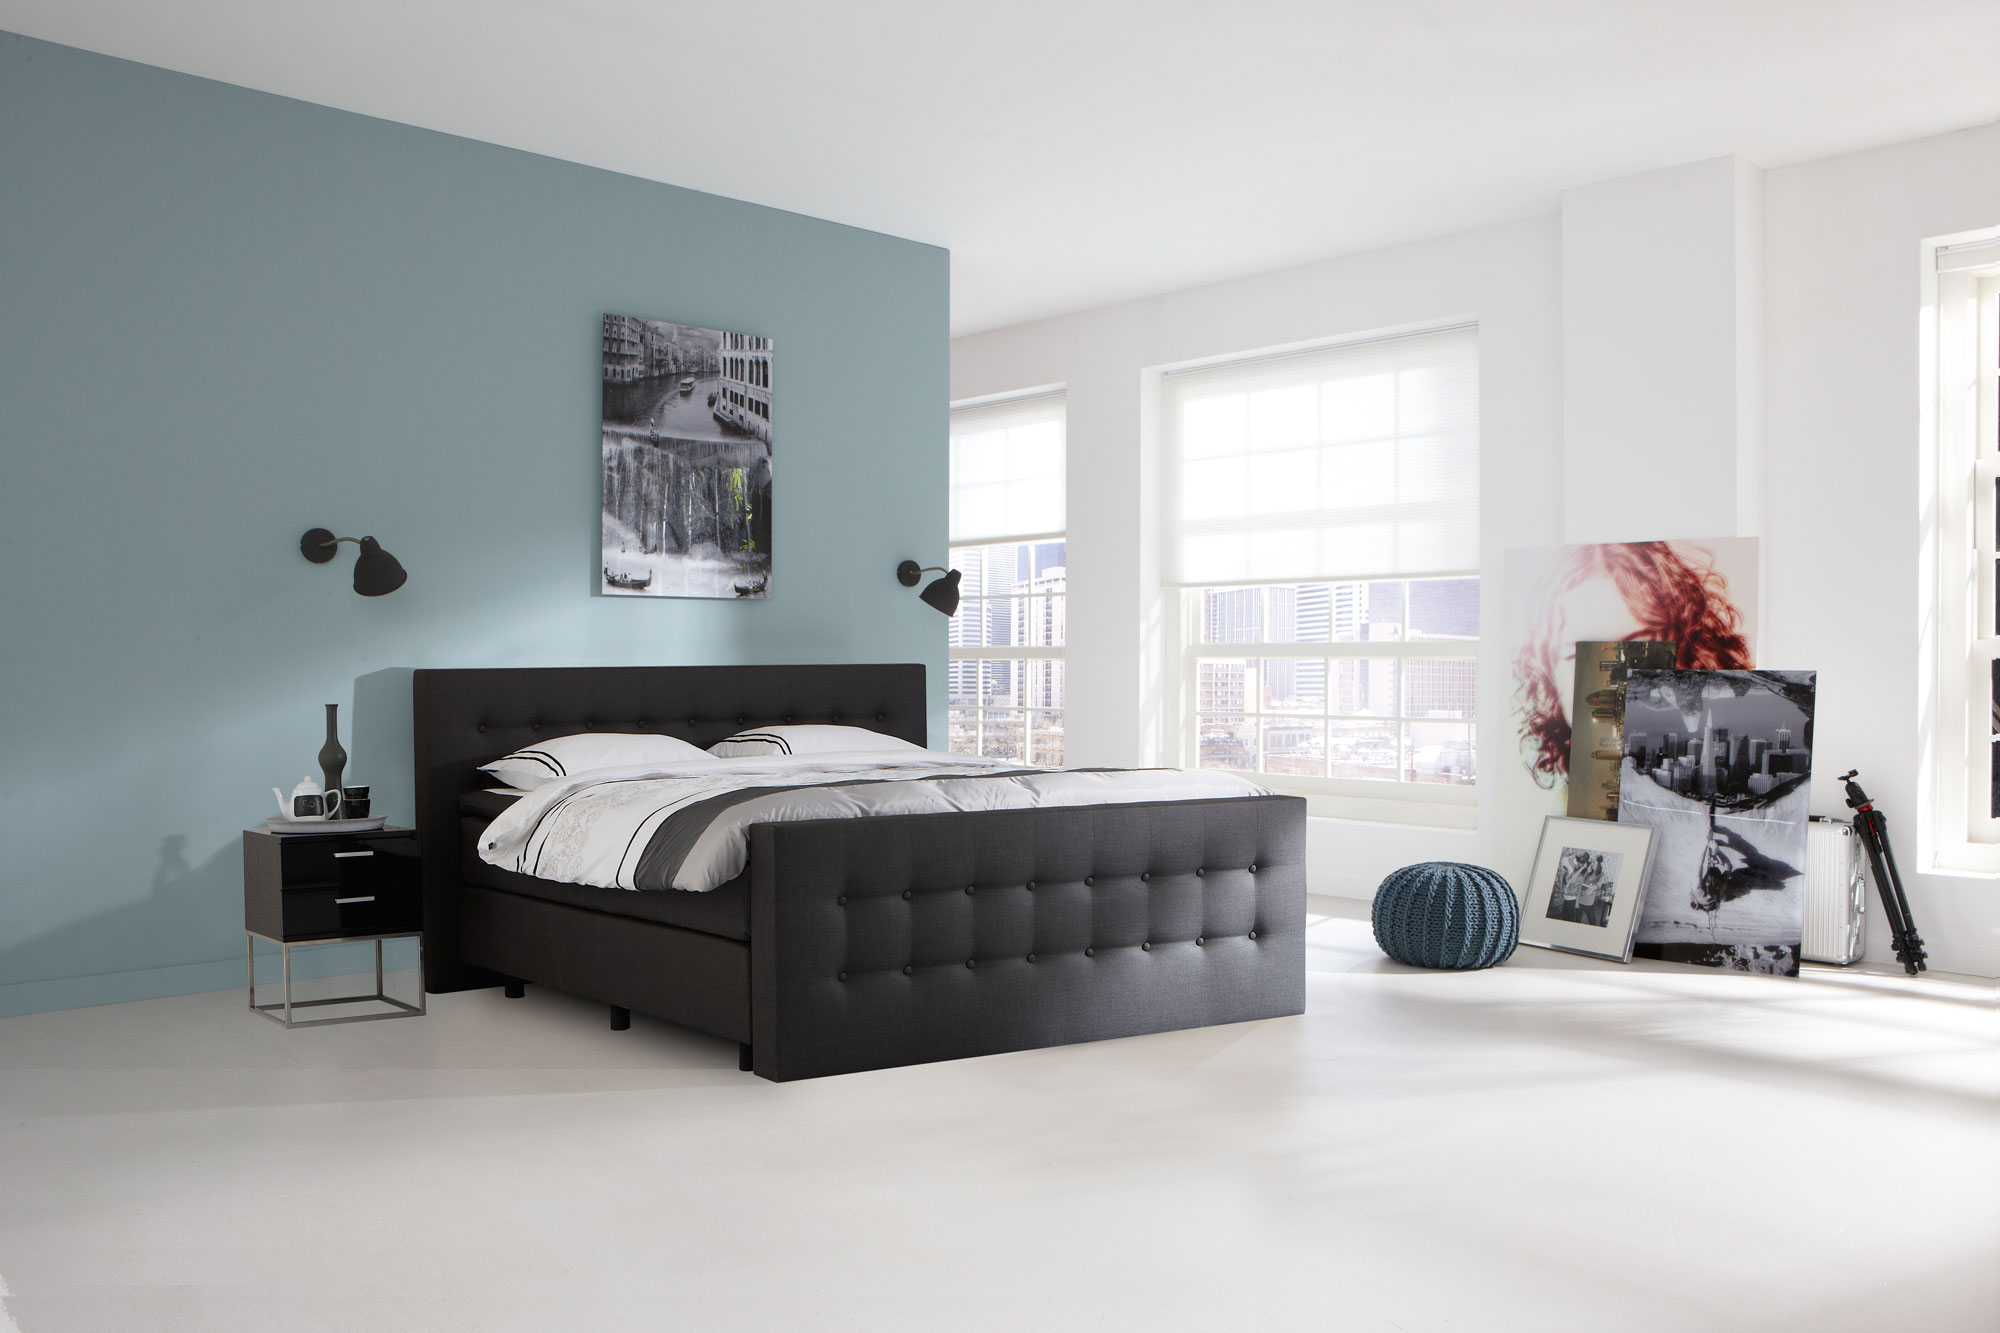 swiss sense matras almelo. Black Bedroom Furniture Sets. Home Design Ideas